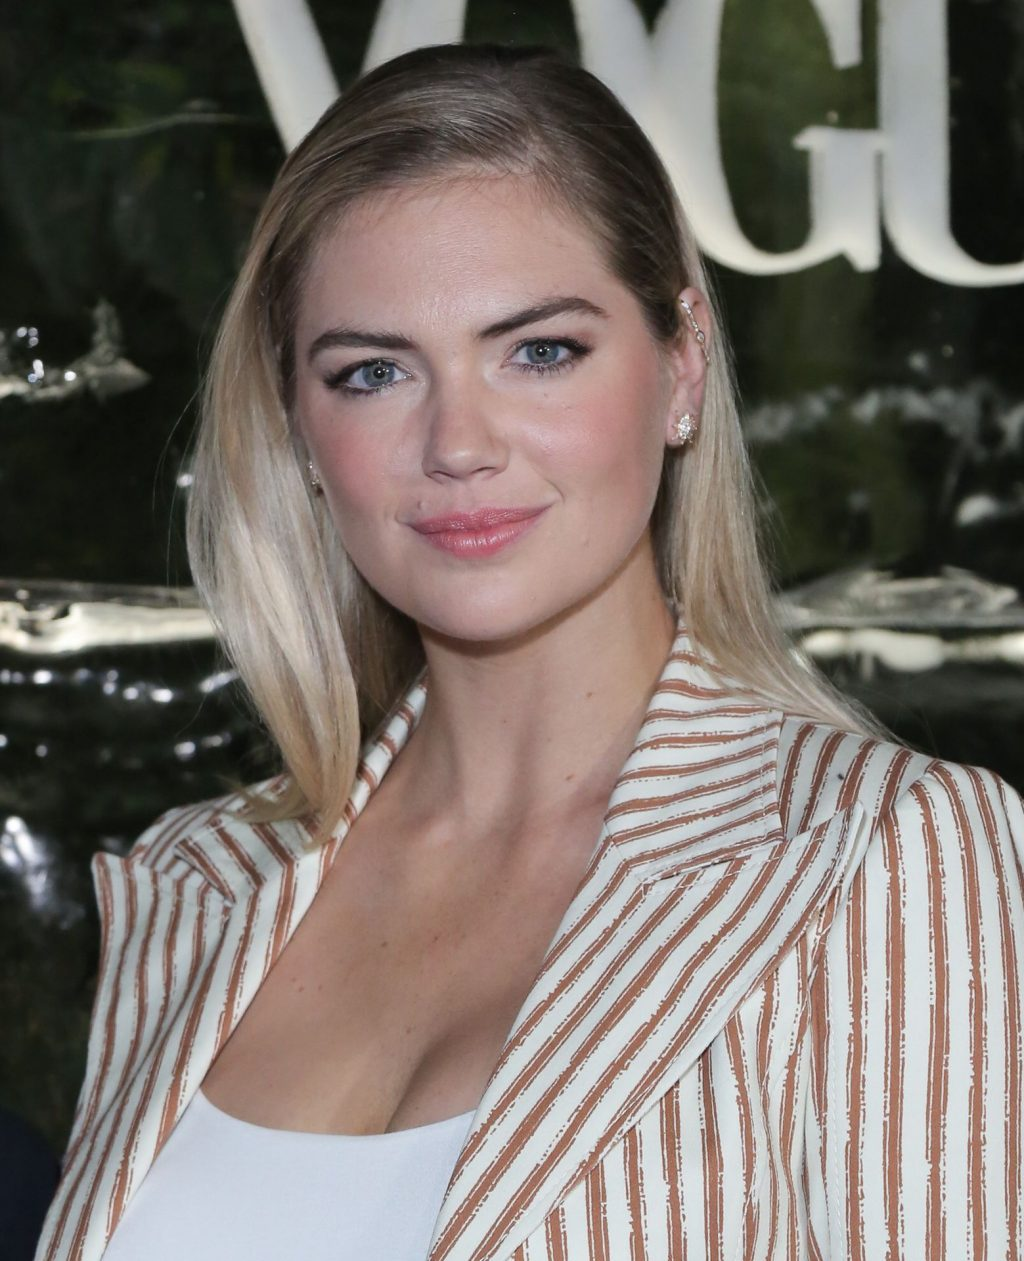 Kate Upton Sexy The Fappening Blog 58 1024x1261 - Kate Upton Attends Canada Goose And Vogue Cocktails & Conversations (104 Photos)